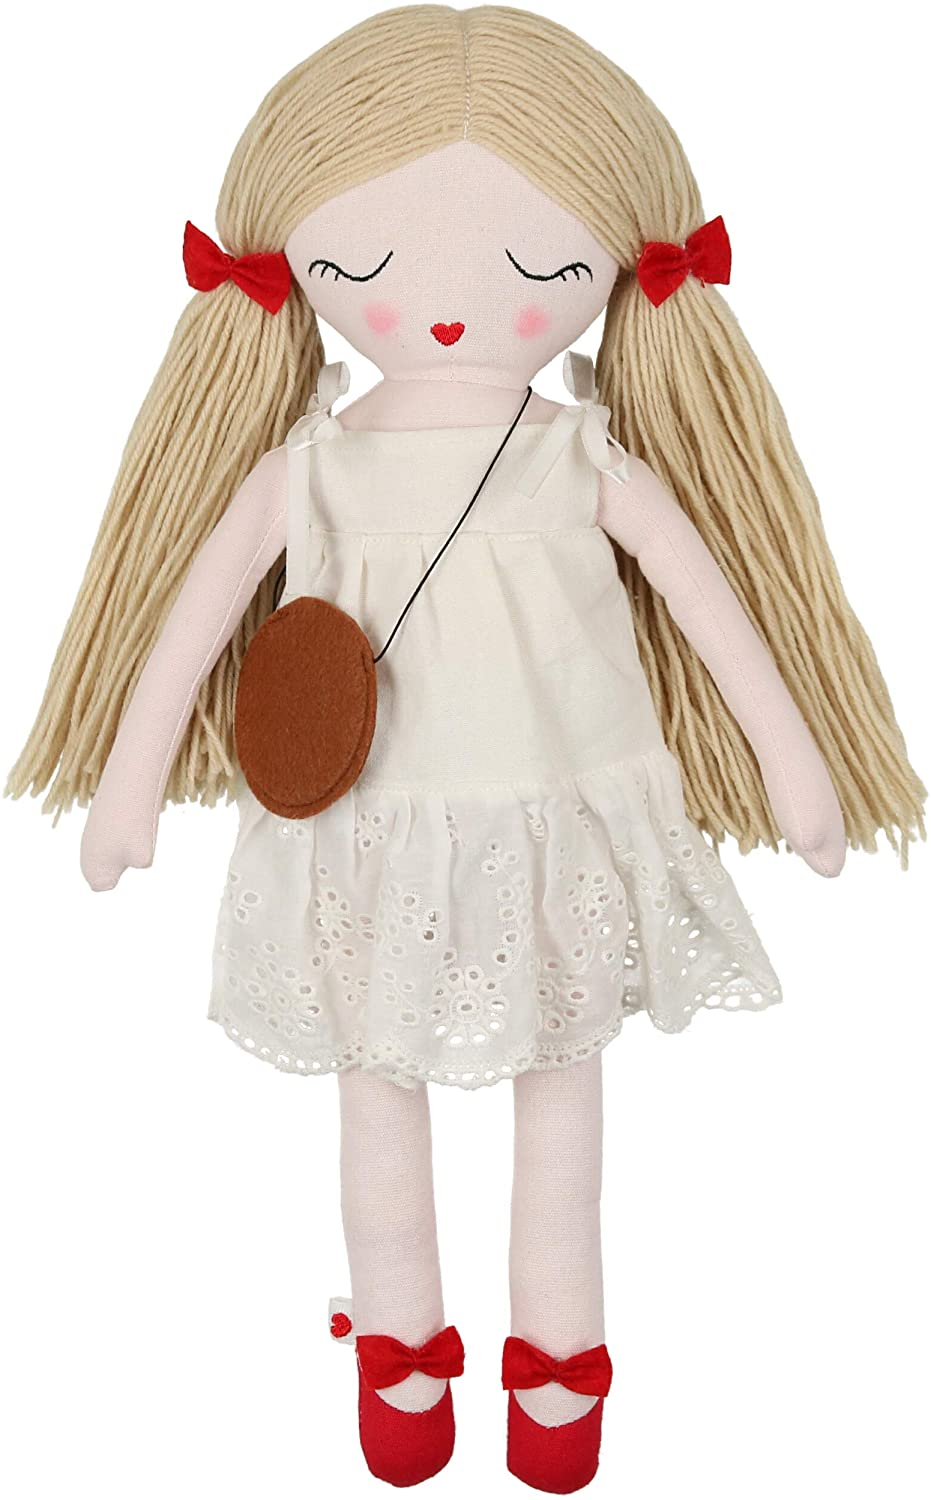 Hearts of Yarn Mila Plush Handmade Doll for Girls Soft Cuddle Toy for Toddlers, Infants & Babies 19 inches Tall Extra Large, Handmade First Baby Doll Cute Nursery Room Decor